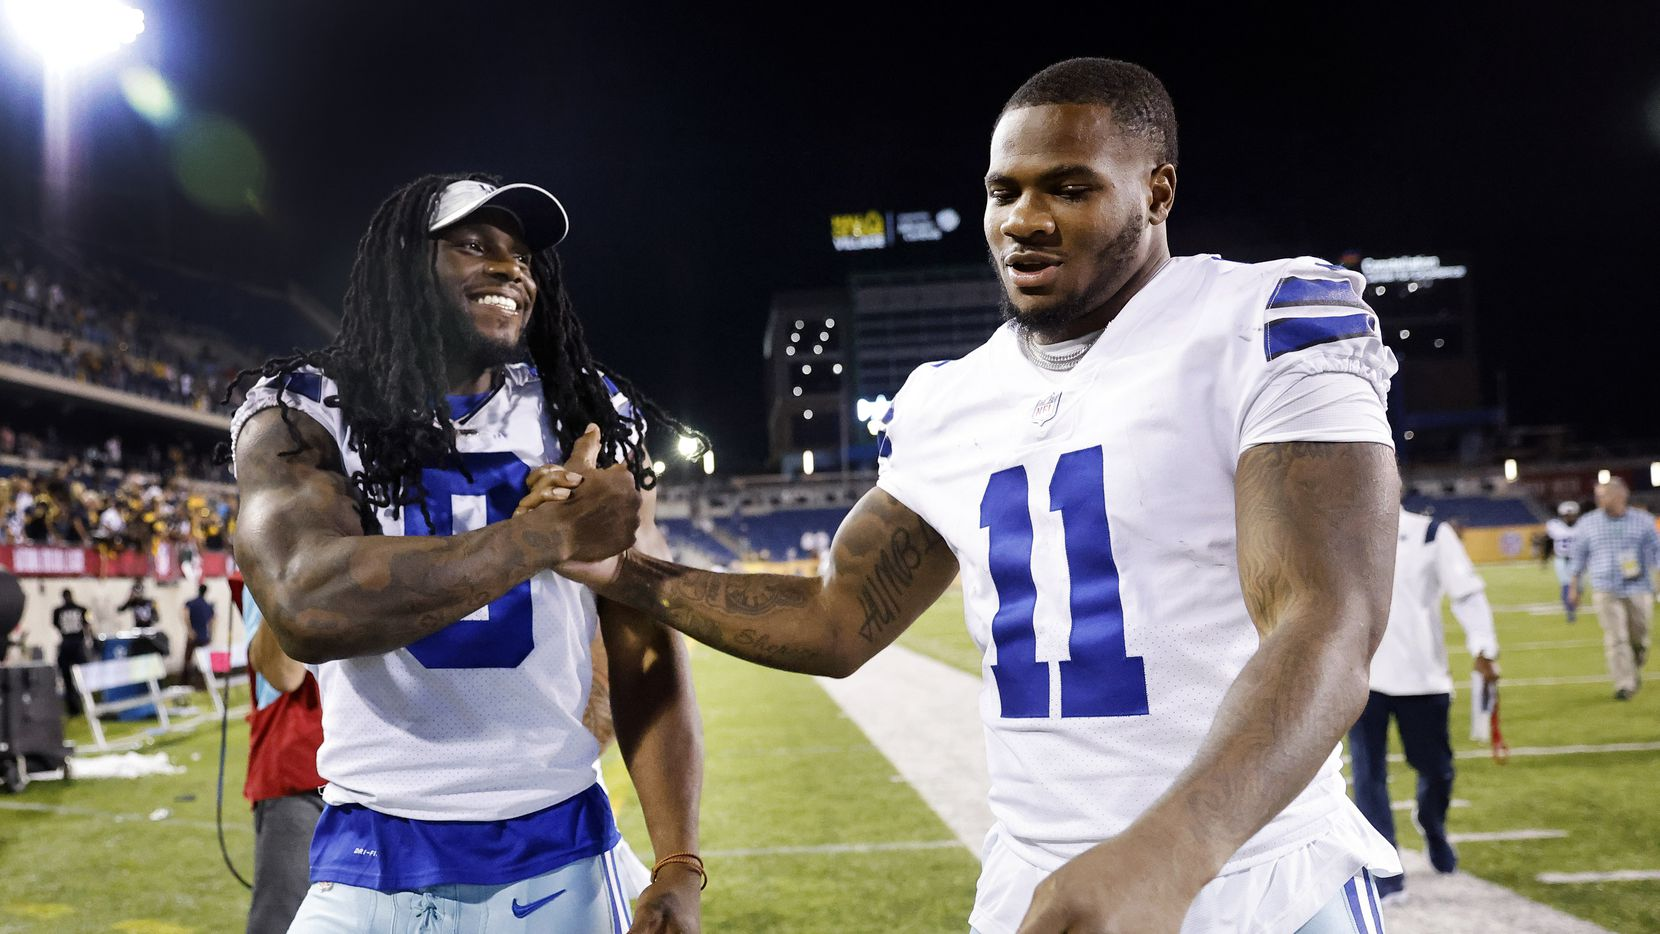 Dallas Cowboys linebacker Jaylon Smith (9) congratulates rookie linebacker Micah Parsons (11) after his first game. Parsons had a fumlbe recovery during their preseason game with the Pittsburgh Steelers at Tom Benson Hall of Fame Stadium in Canton, Ohio, Thursday, August 5, 2021.